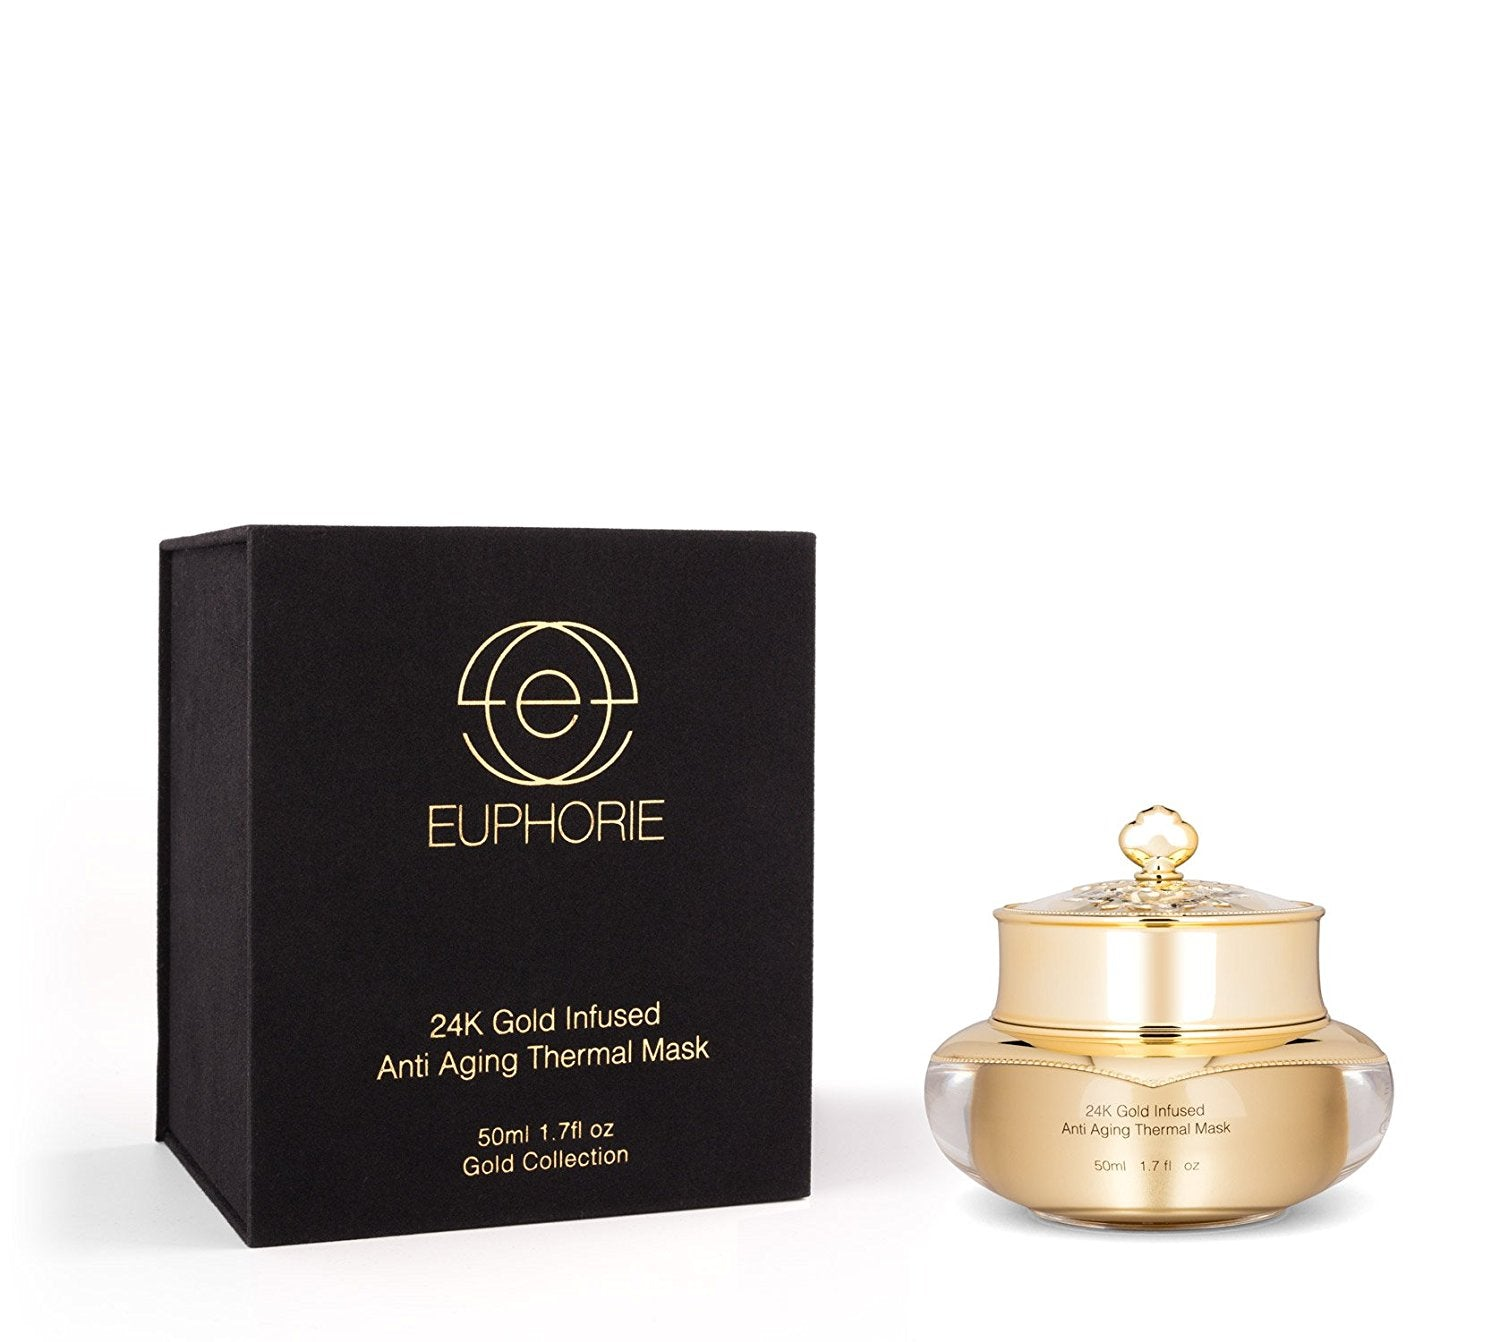 Euphorie Pore Refining Gold Infused Thermal Mask